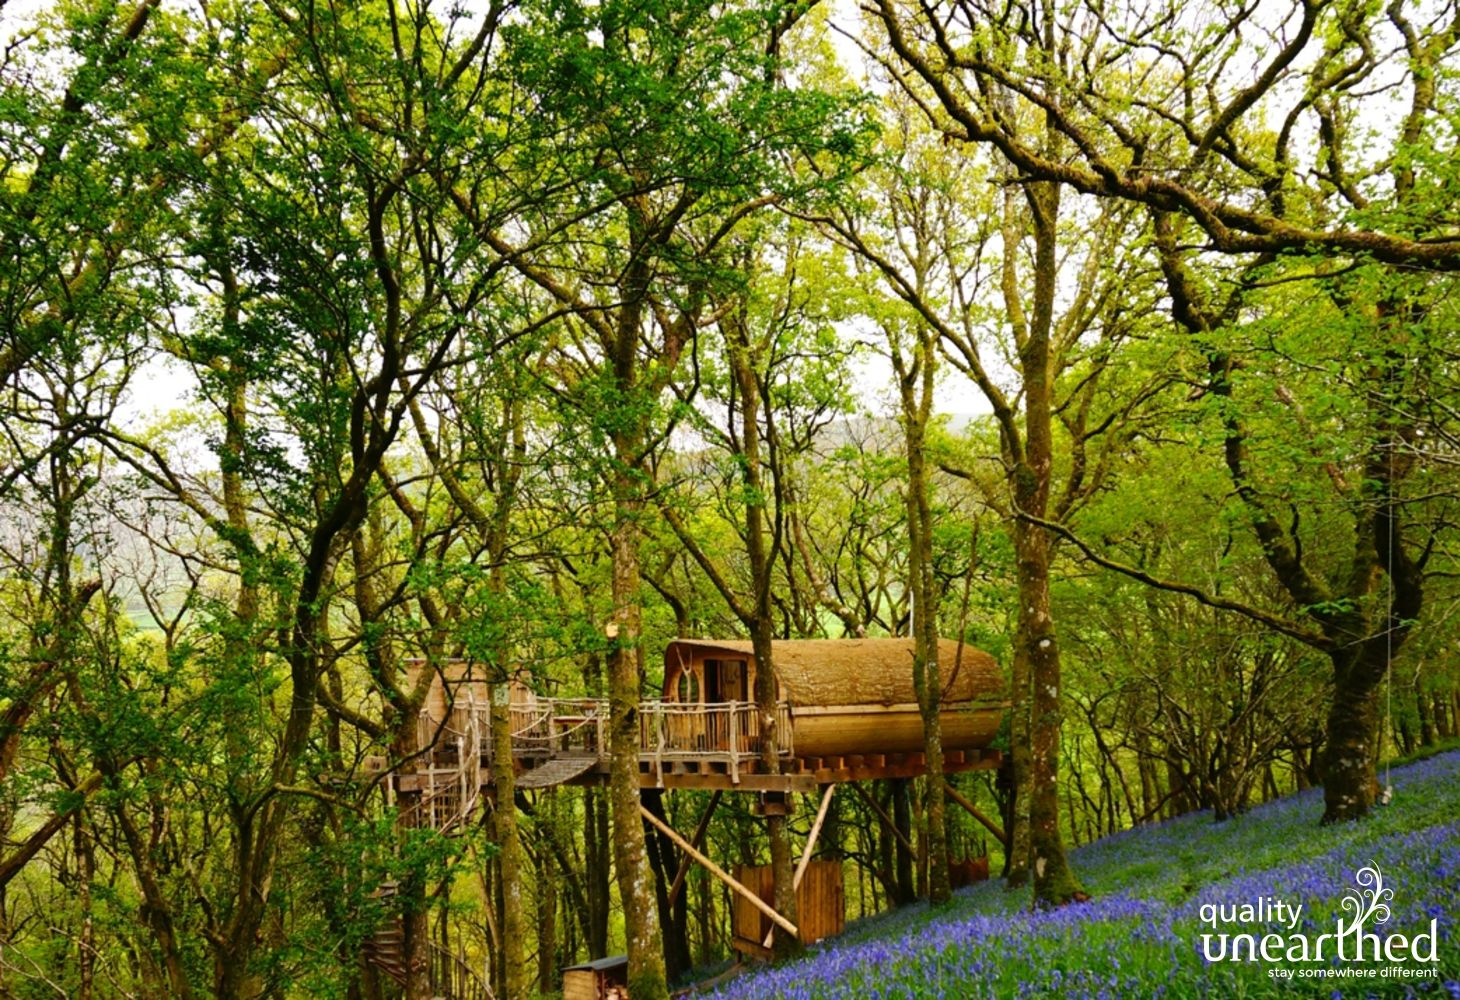 A wooden treehouse sits lightly in woodland beyond a clearing full of bluebells